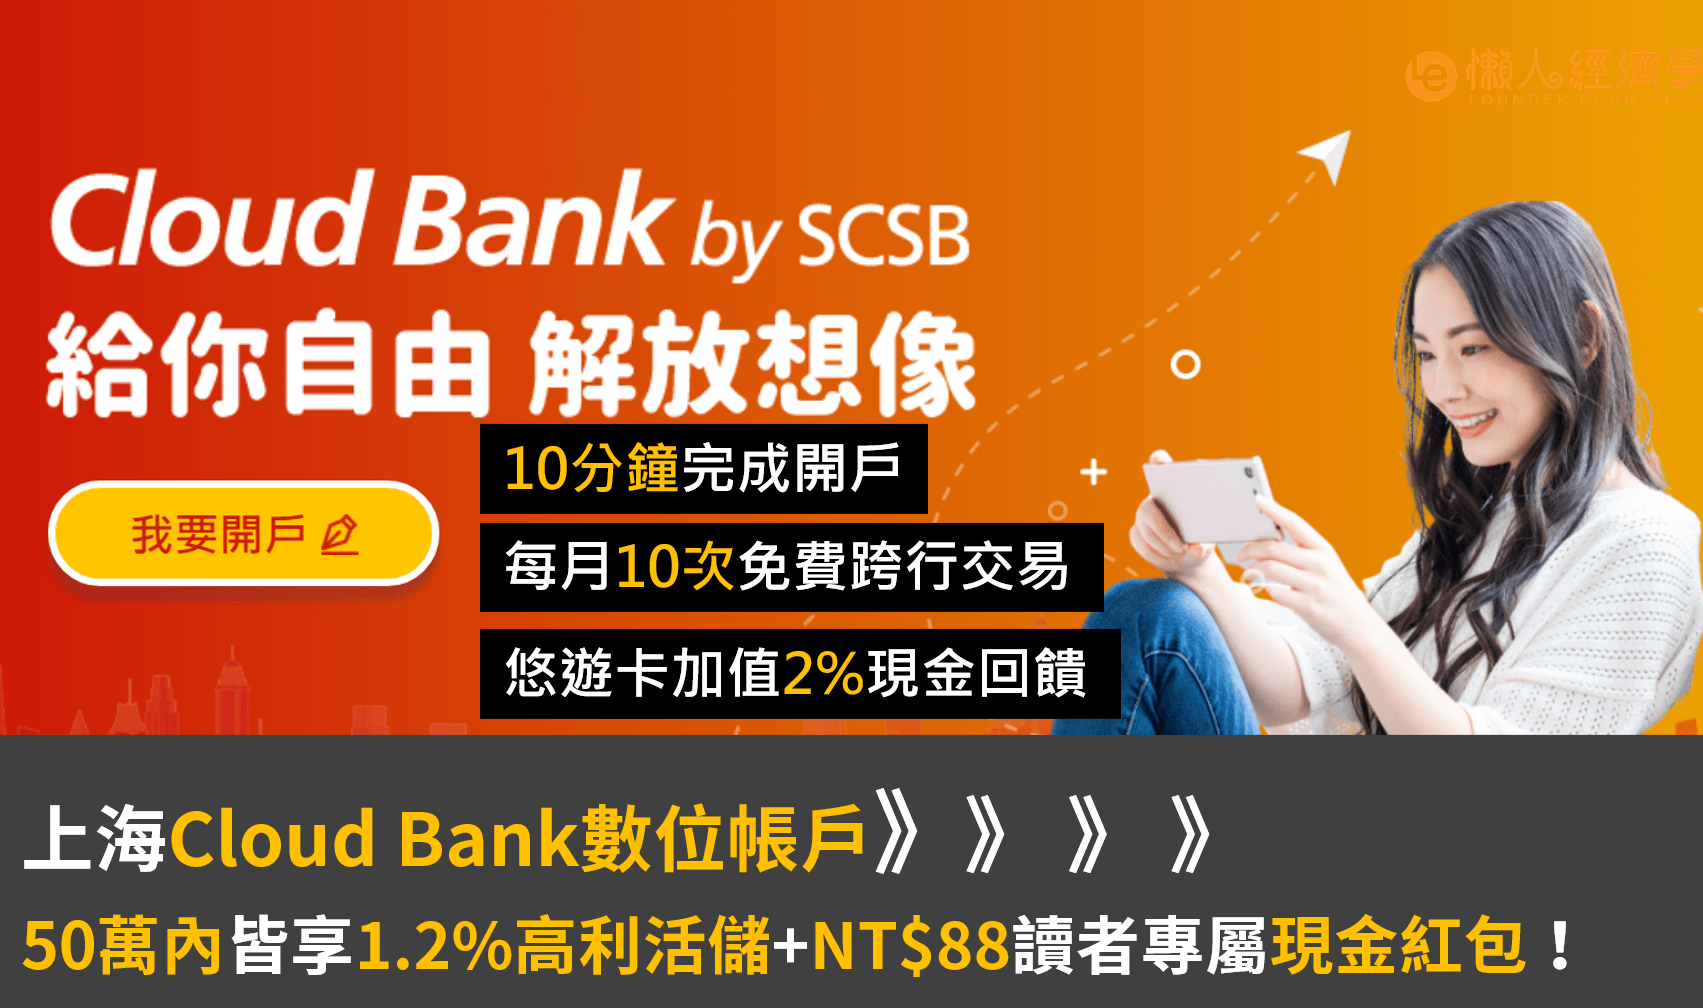 上海Cloud Bank介紹